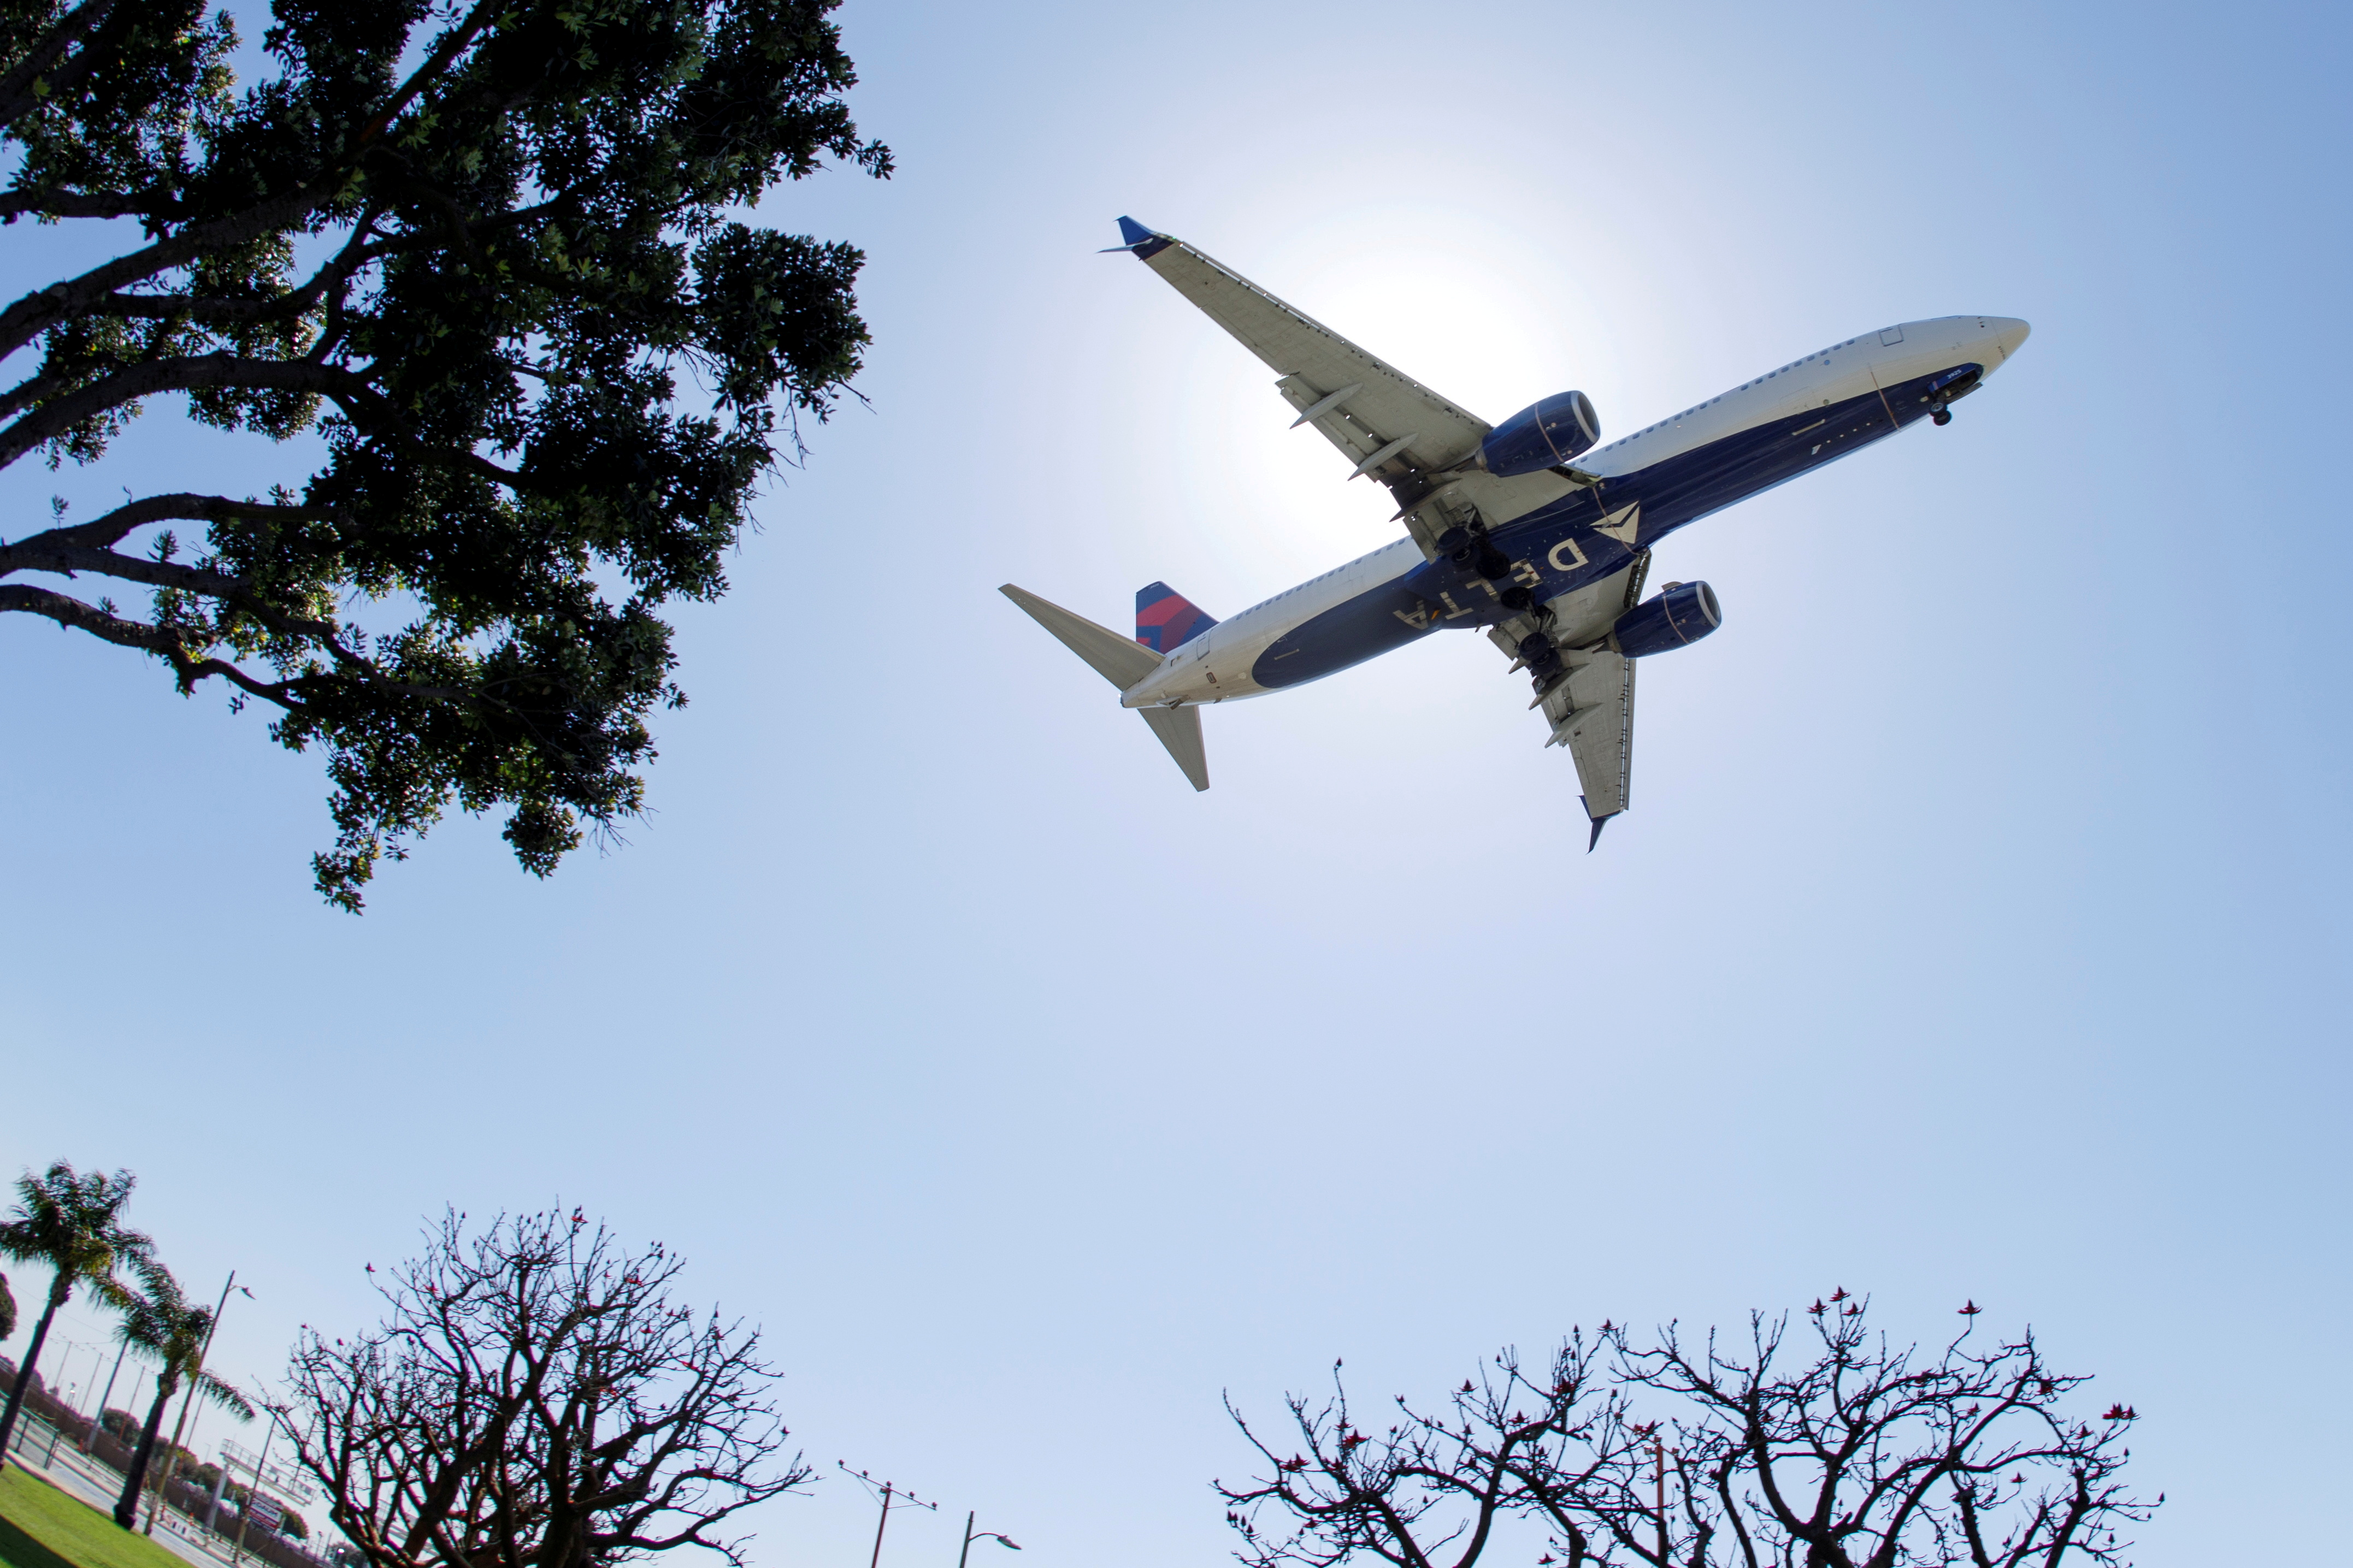 A Delta Airlines passenger jet approaches to land at LAX in Los Angeles, California, U.S., April 7, 2021. REUTERS/Mike Blake/File Photo